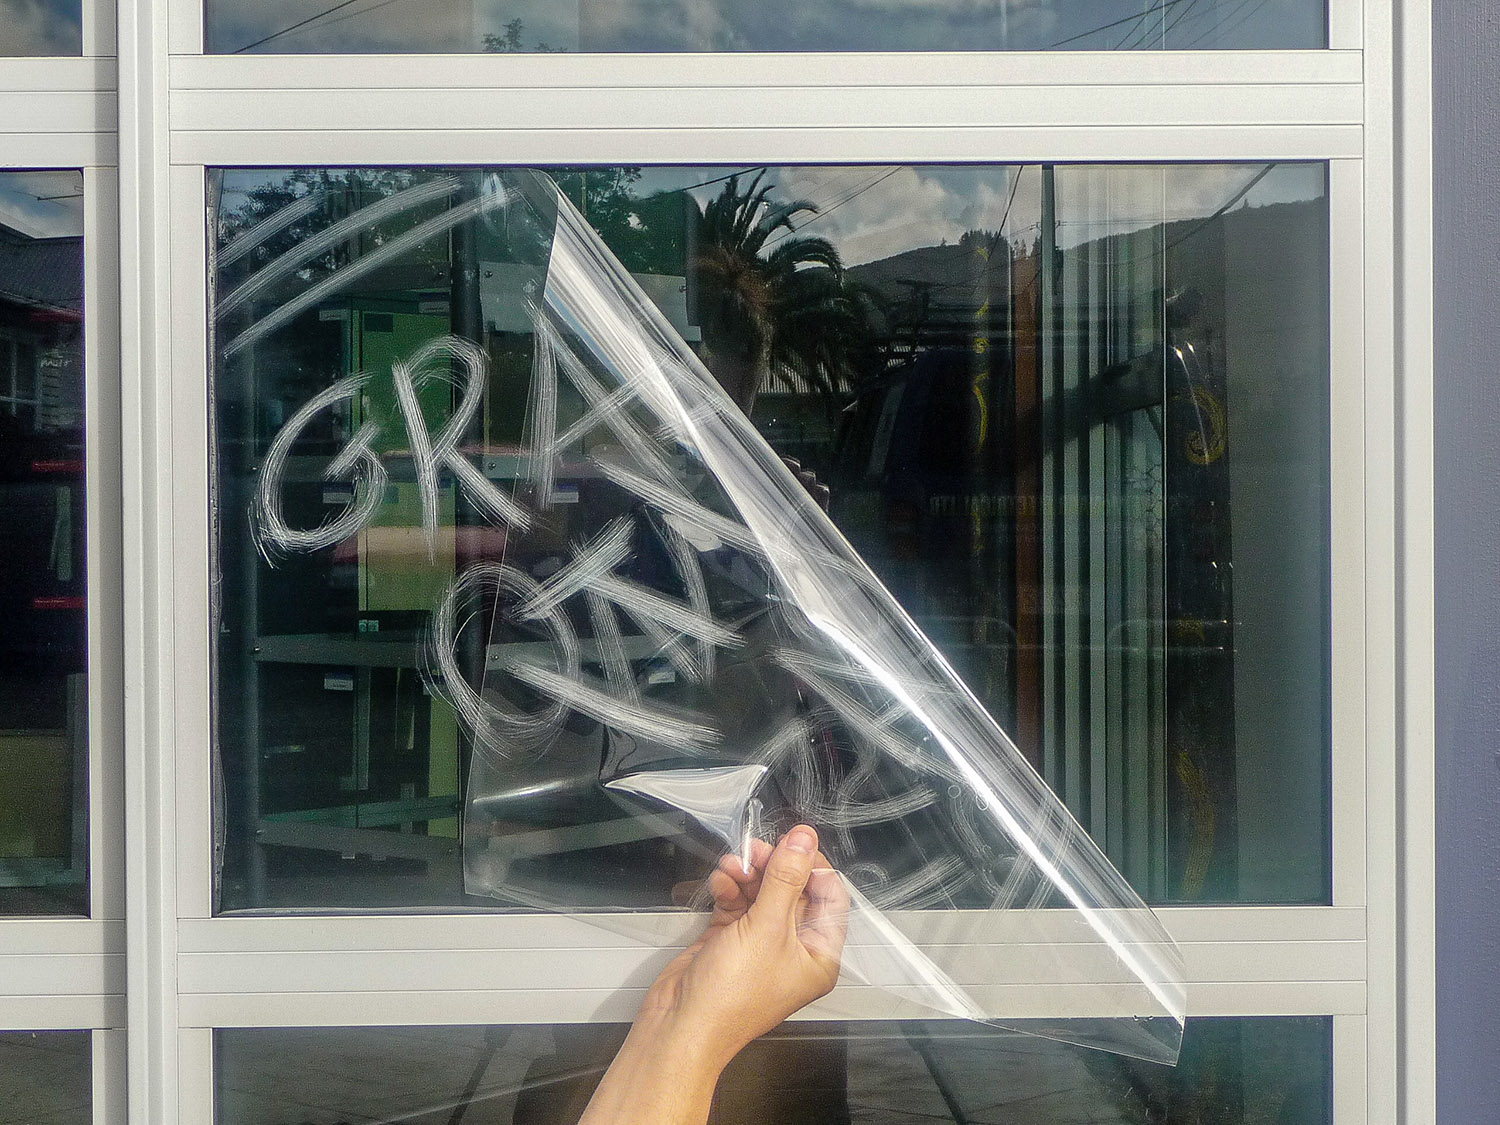 GlassProtech New Zealand, window film glass protection, surface protection, scratch removal, anti-graffiti, anti-break and scratch repair.